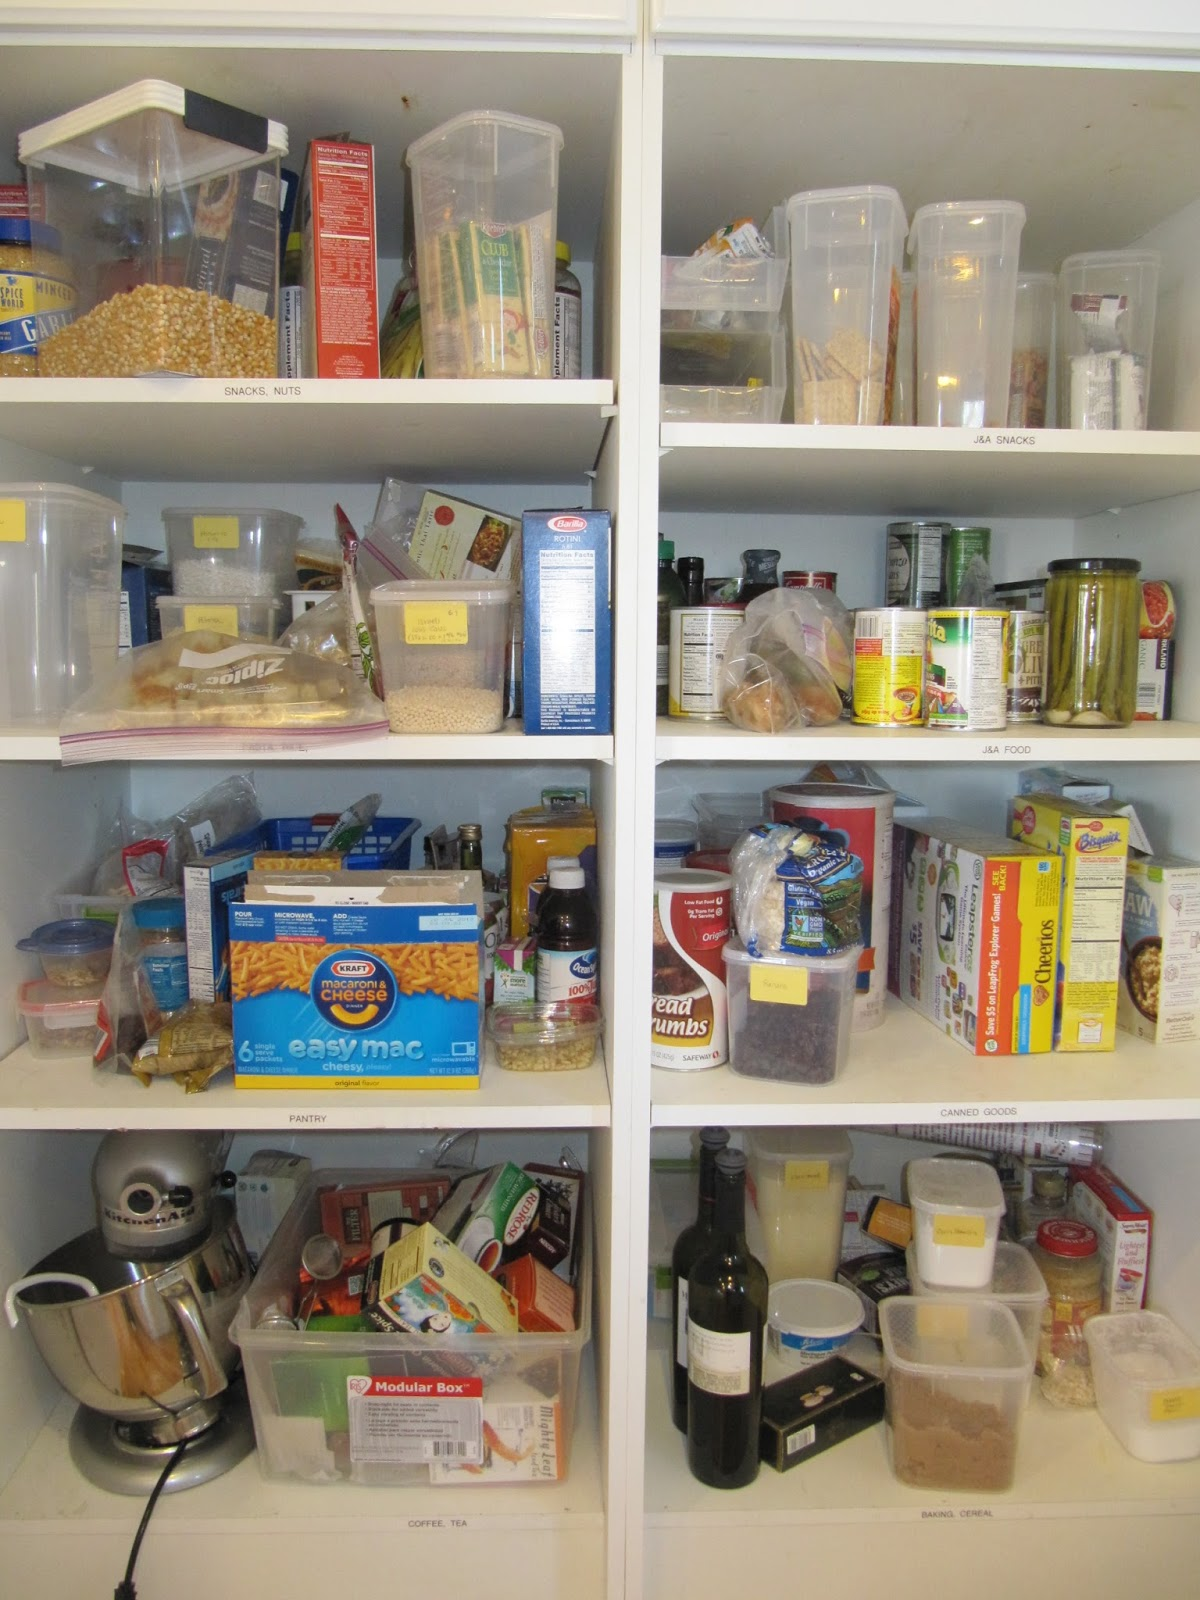 Organizing Kitchen Pantry Everyday Organizing An Organized Kitchen The Pantry Part I